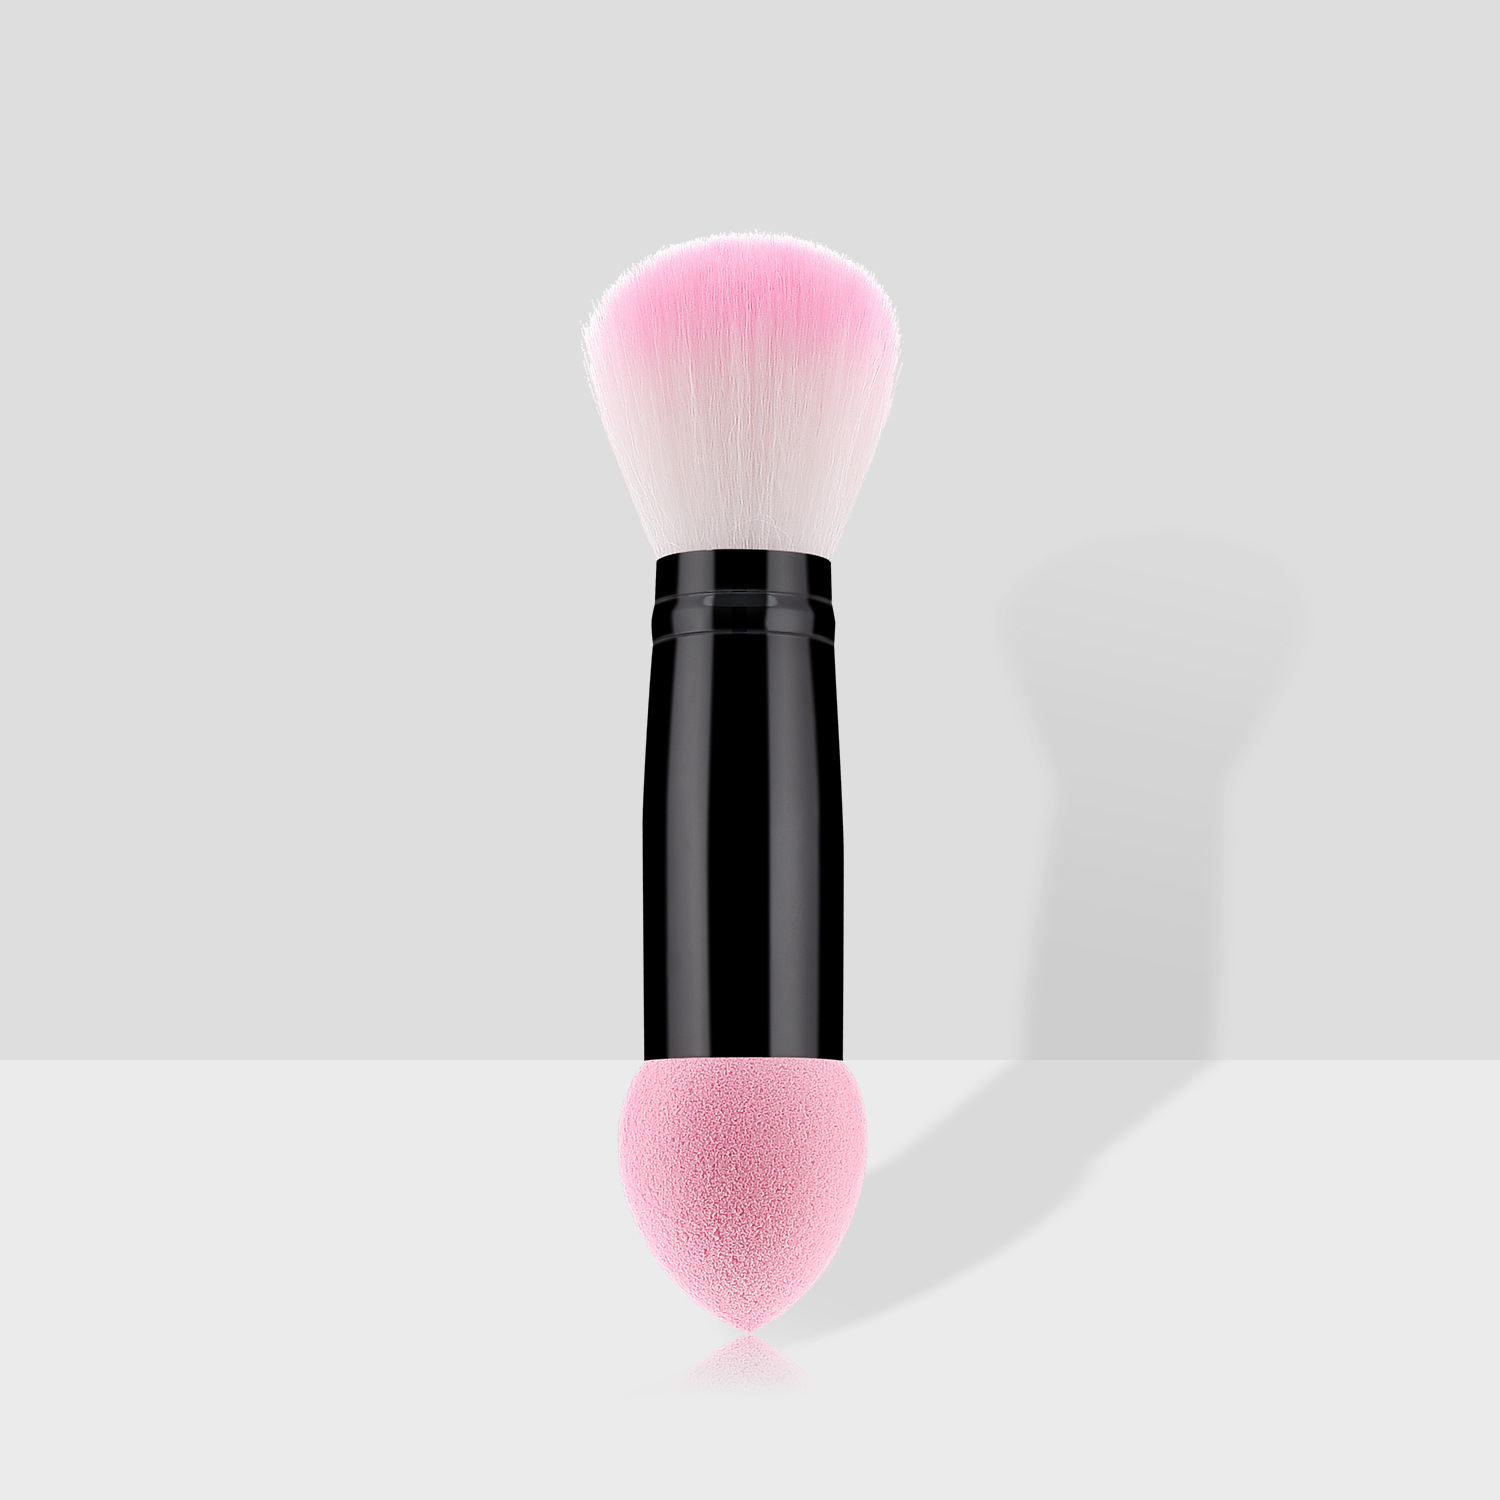 Double end brush makeup sponge and powder